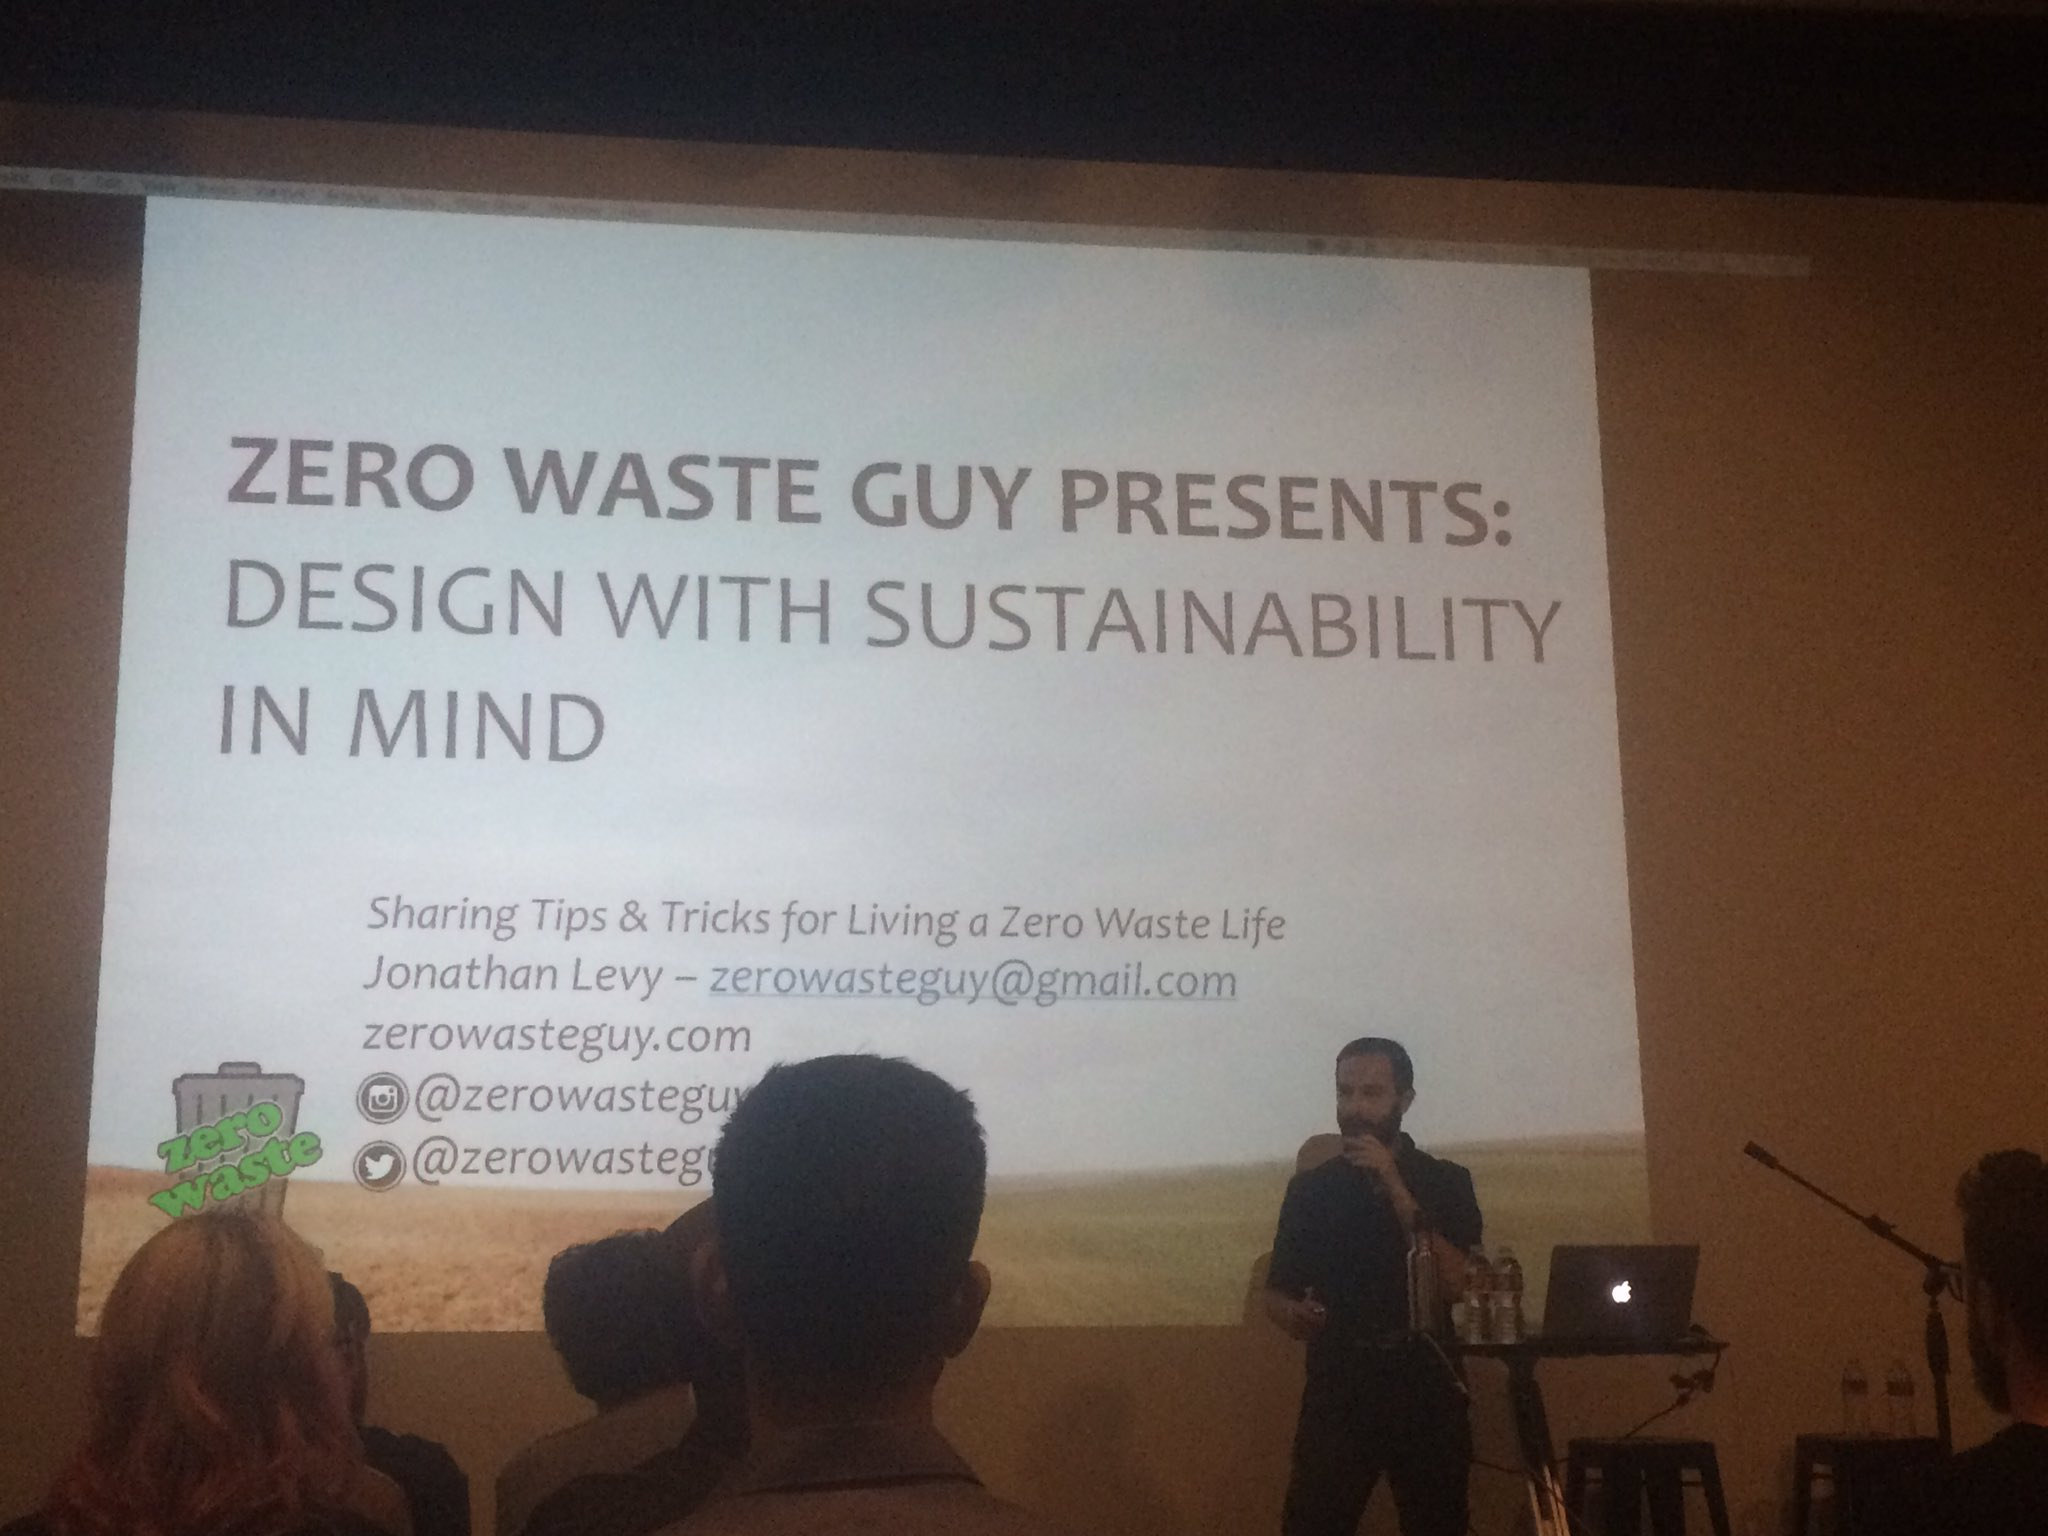 .@zerowasteguy1 talks sustainability at #wud16la. Consider at World Series, manufacturers make 2x merchandise than they need. https://t.co/E62VPRNE7m